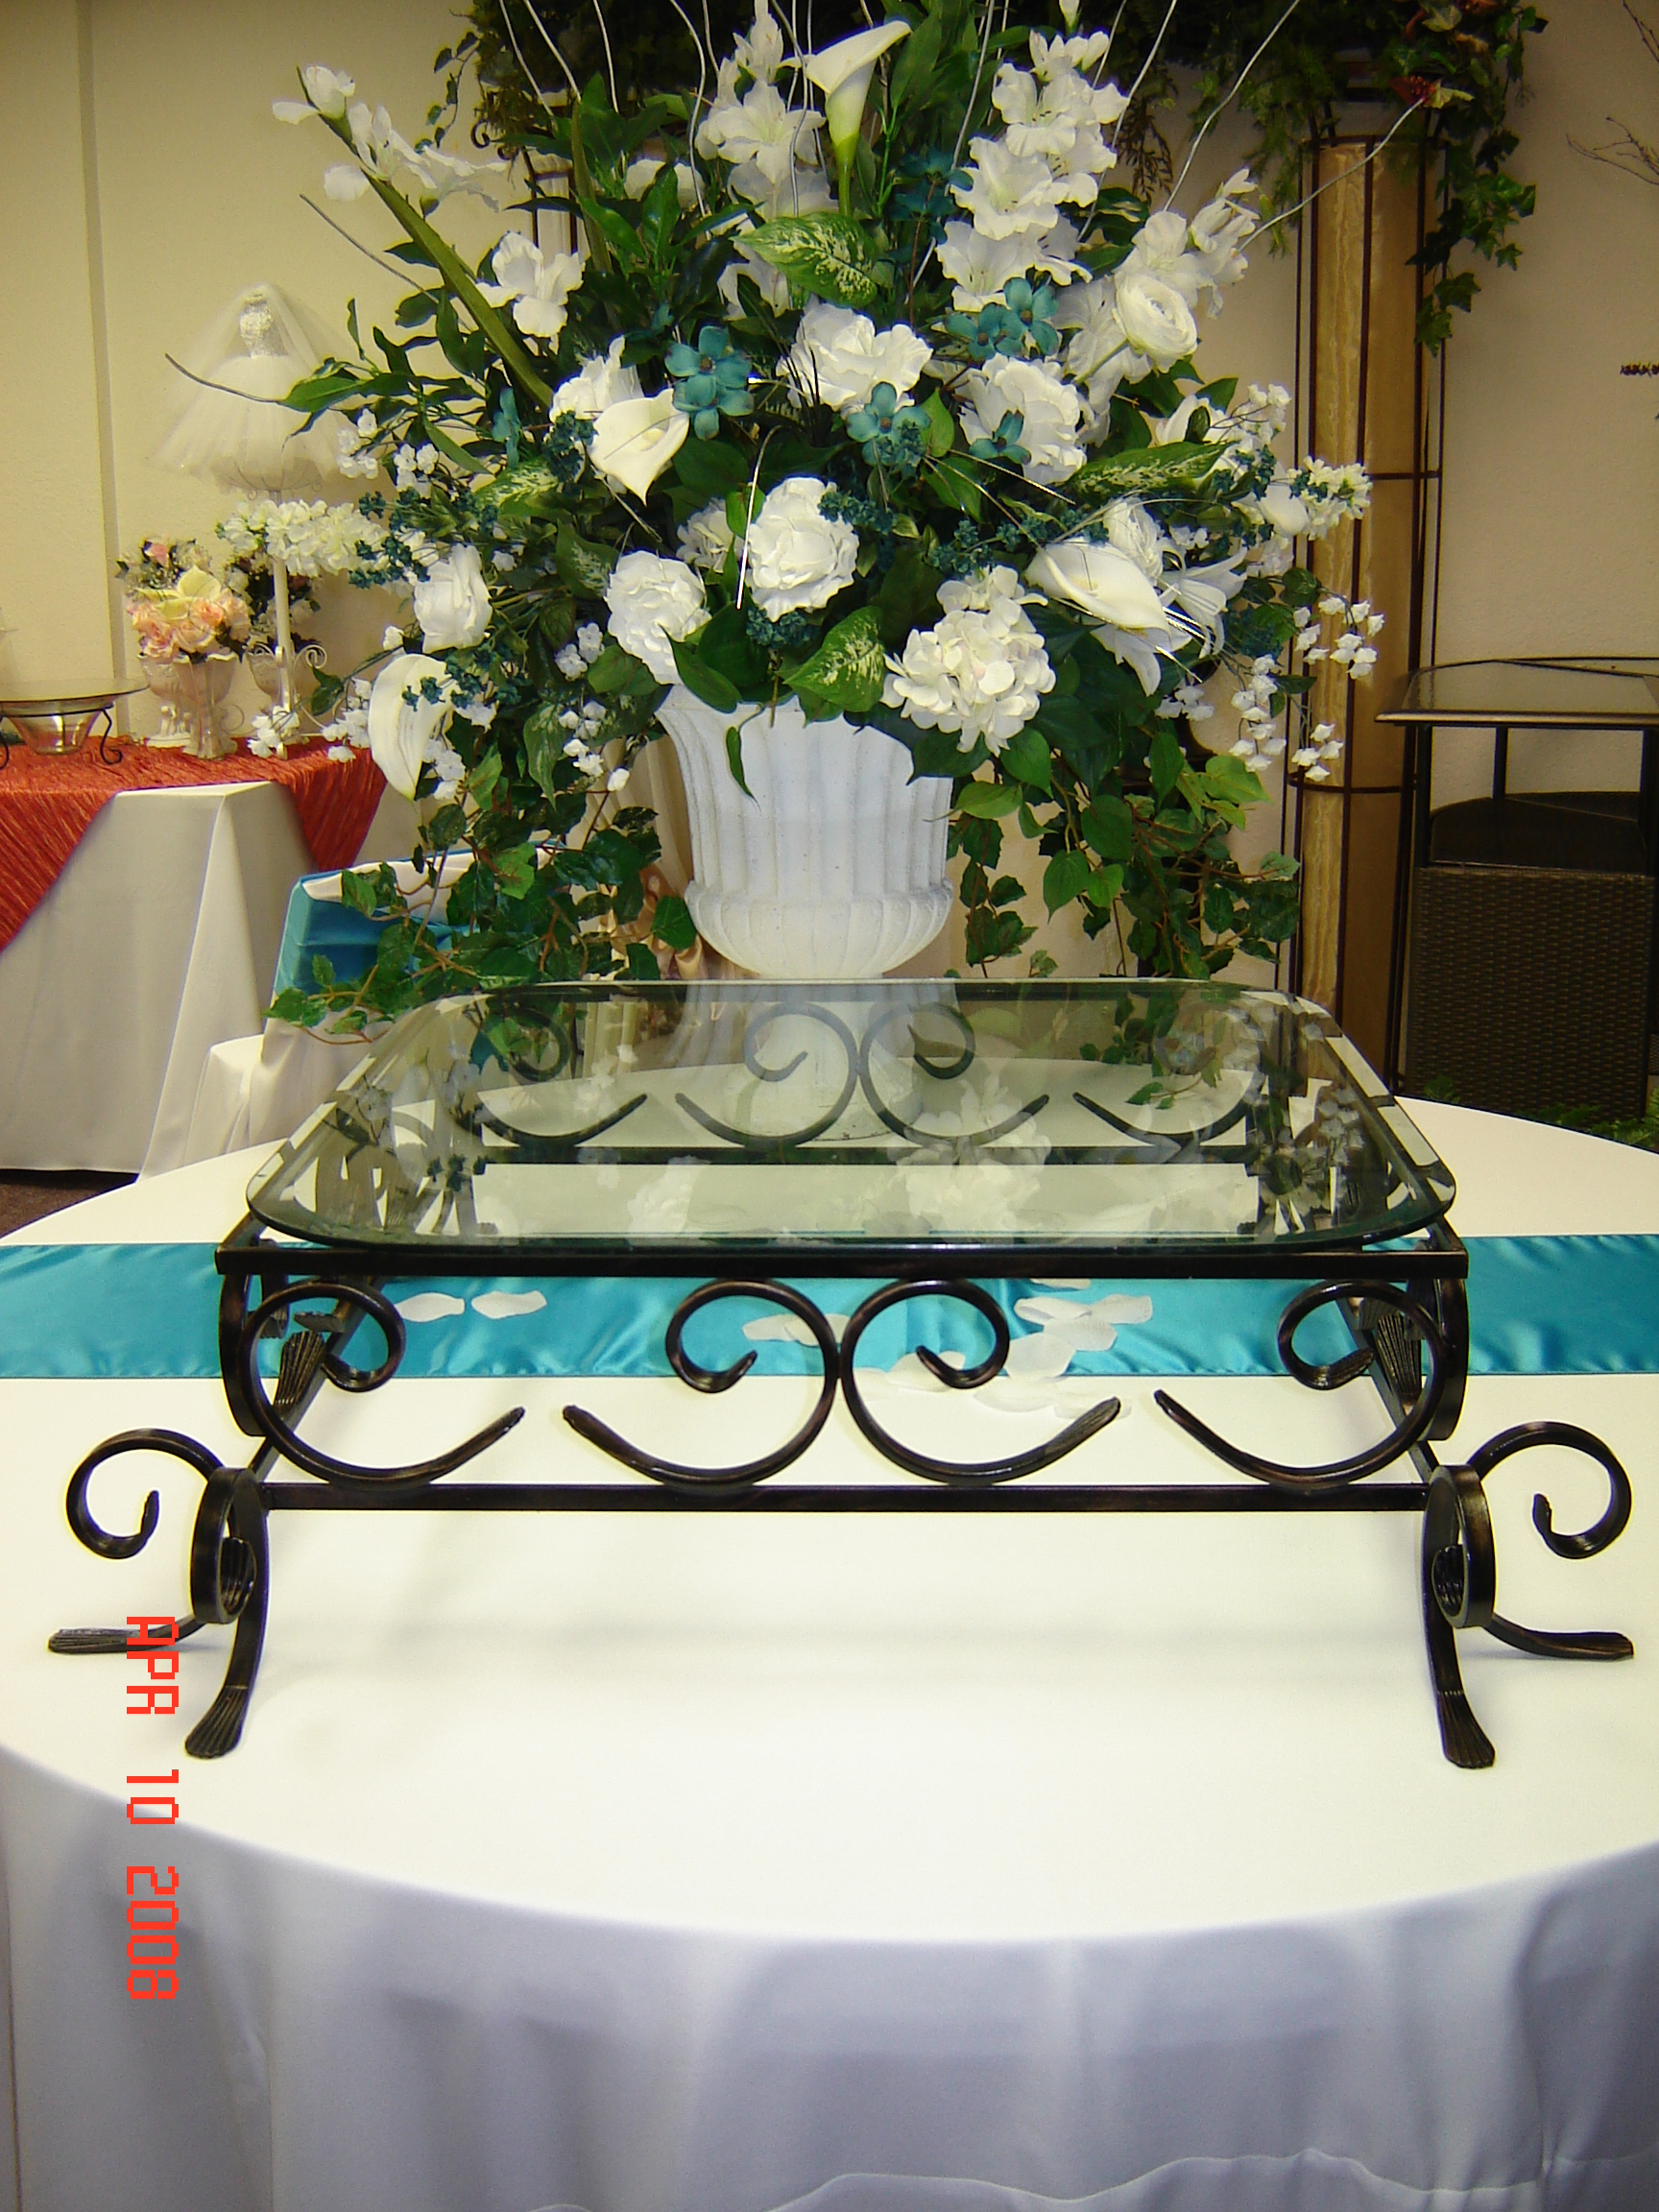 Simply Elegant Weddings- Cake Stands, Silver, Gold, Silver cake ...